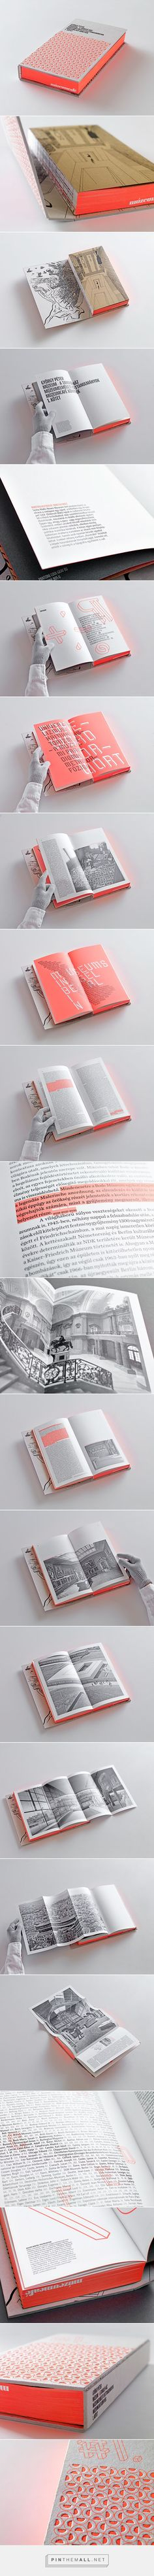 Museum – A House for Learning by Péter György on Behance... - a grouped images picture - Pin Them All